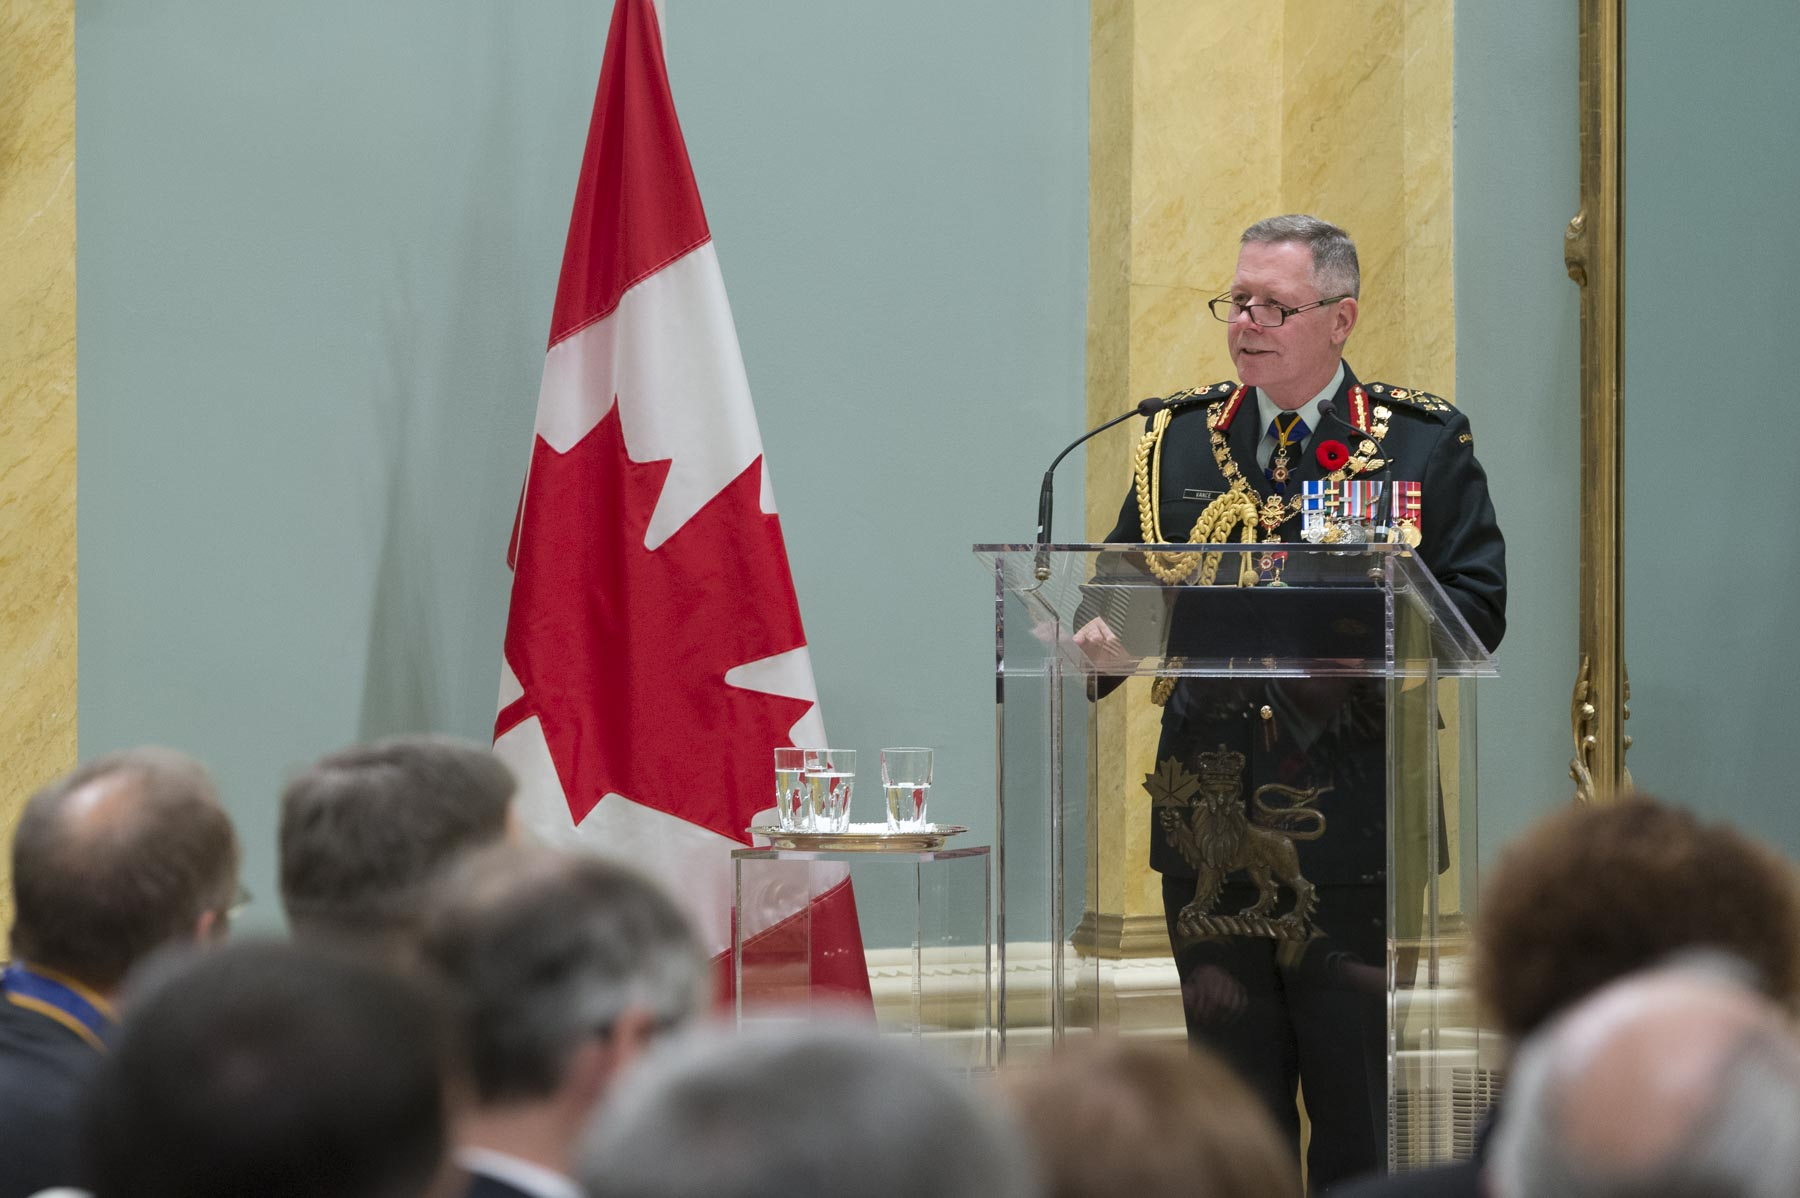 General Jonathan Vance, Chief of the Defence Staff also spoke during the ceremony.